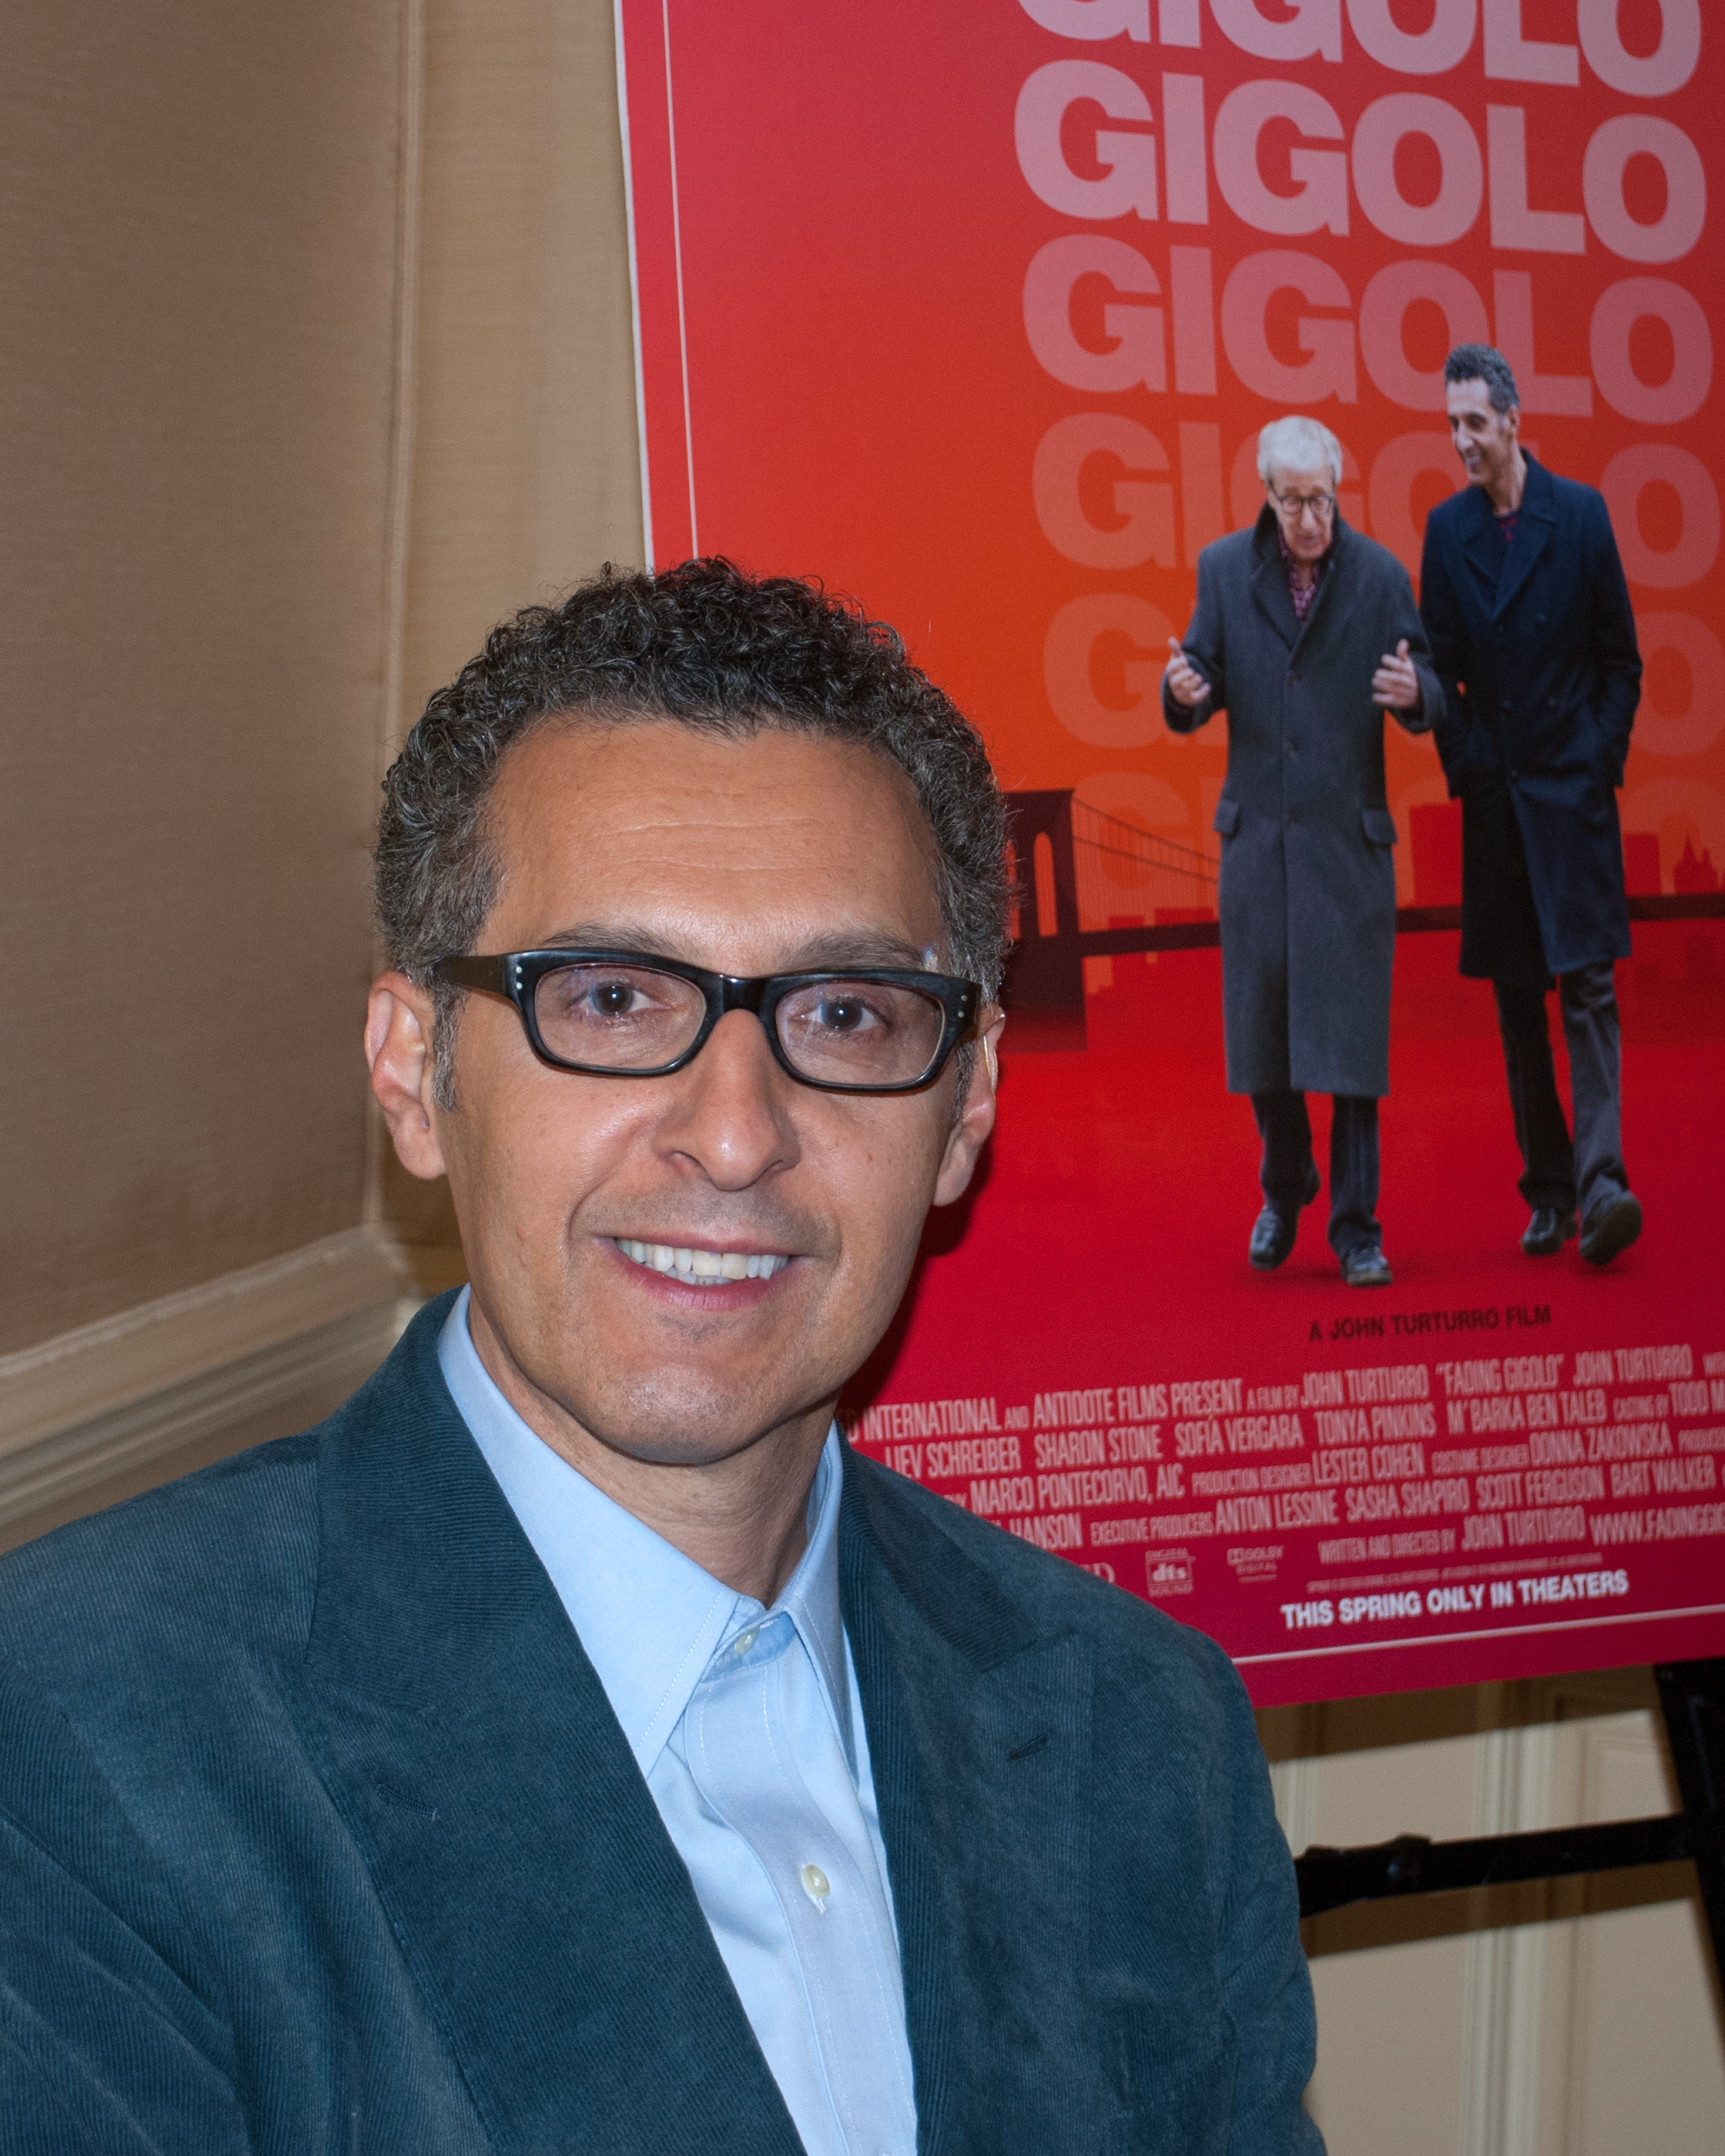 Caption: John Turturro, San Francisco, CA 4/7/14, Credit: Andrea Chase